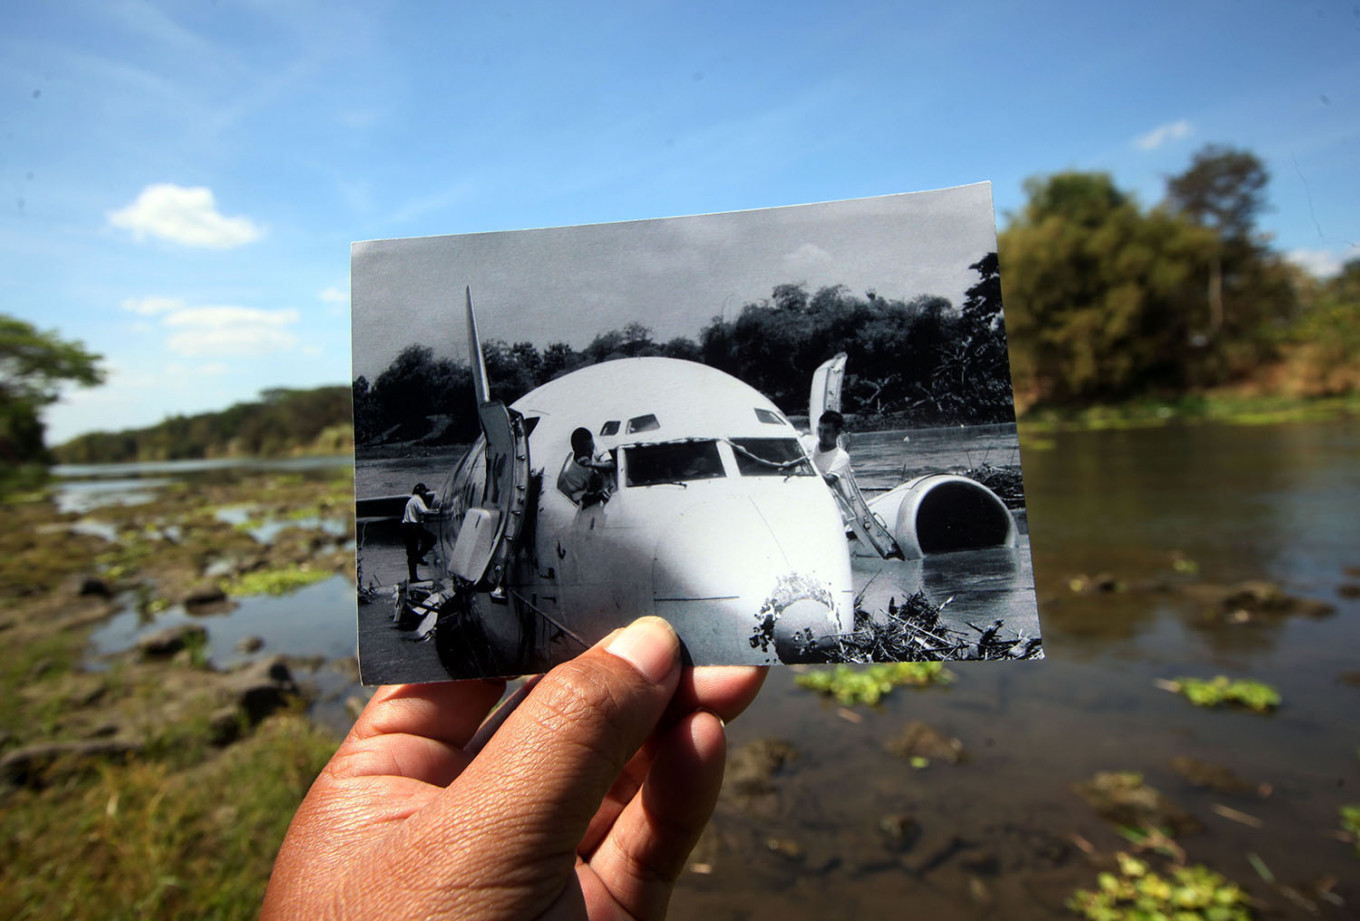 Water of the Bengawan Solo River covers almost half of the aircraft's remains. JP/Boy T. Harjanto